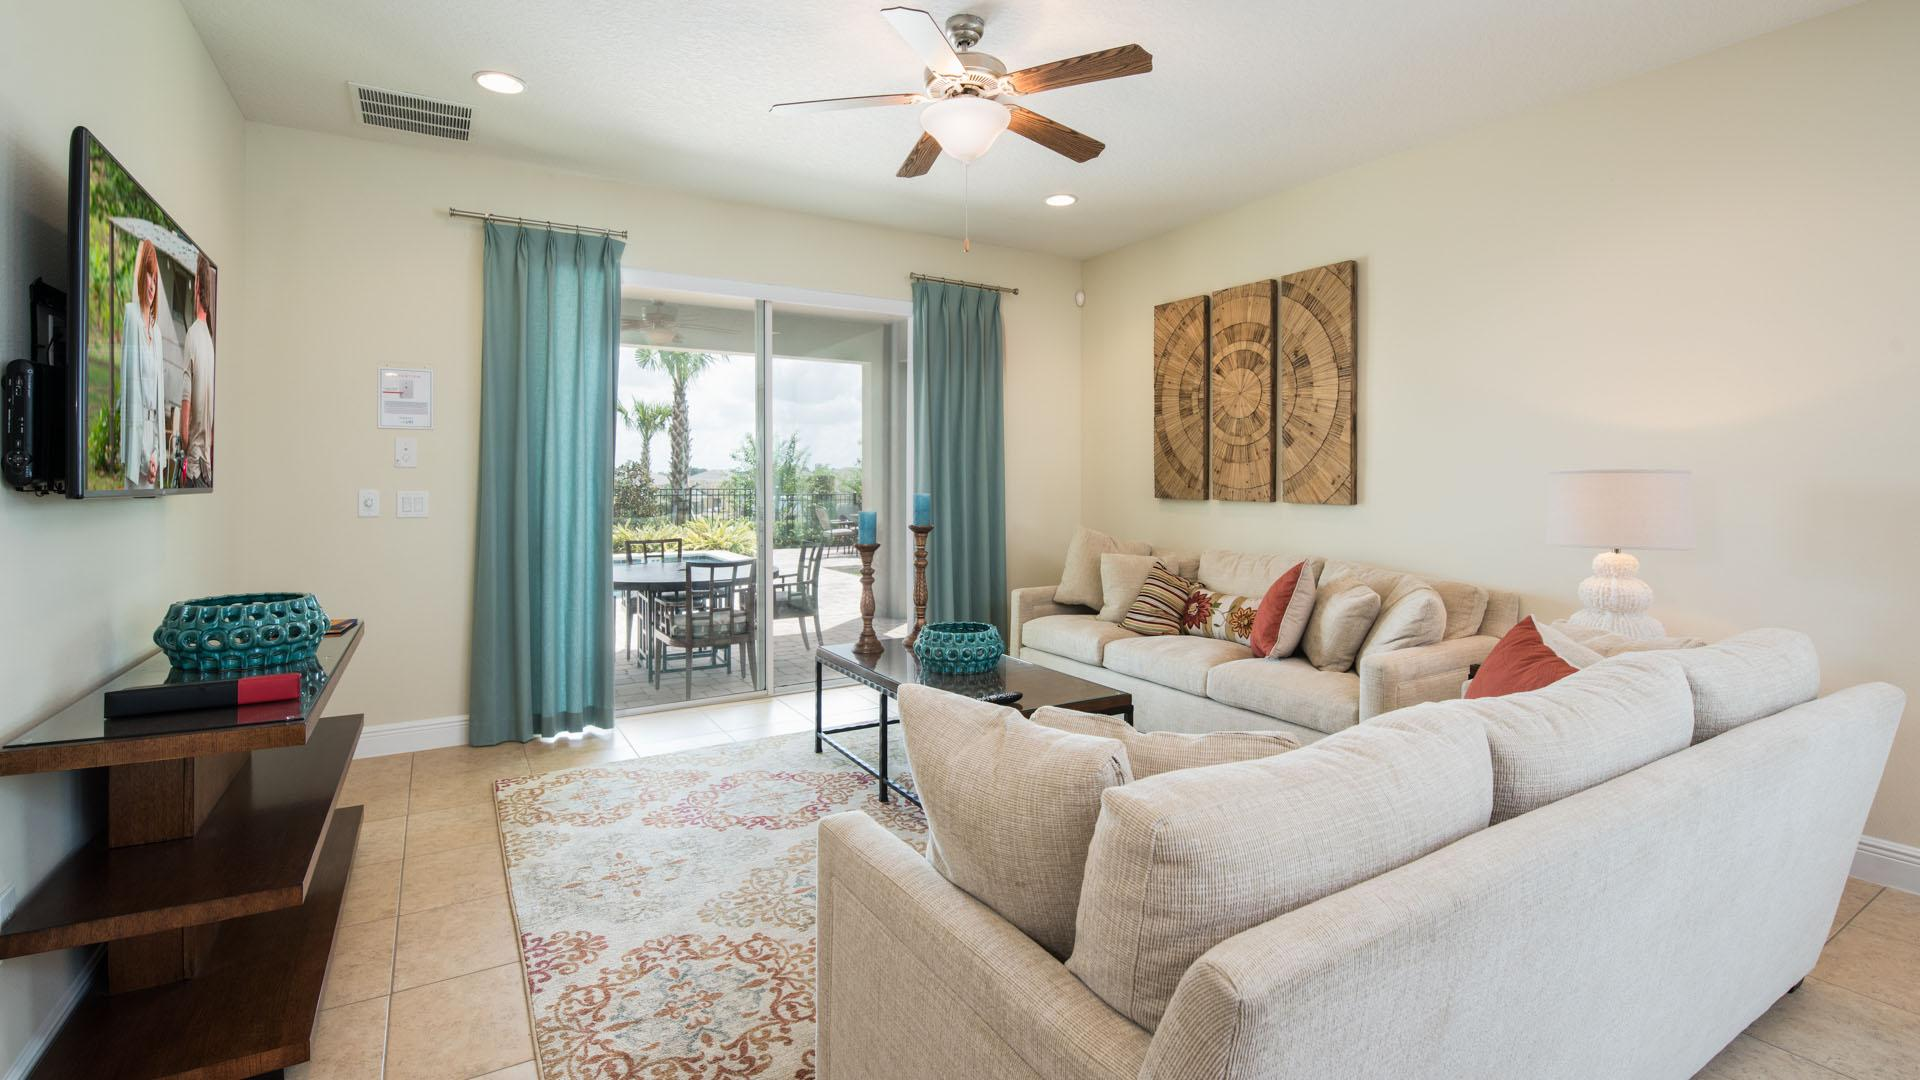 Property Image 1 - Bright Home with Water Park Access near Disney World